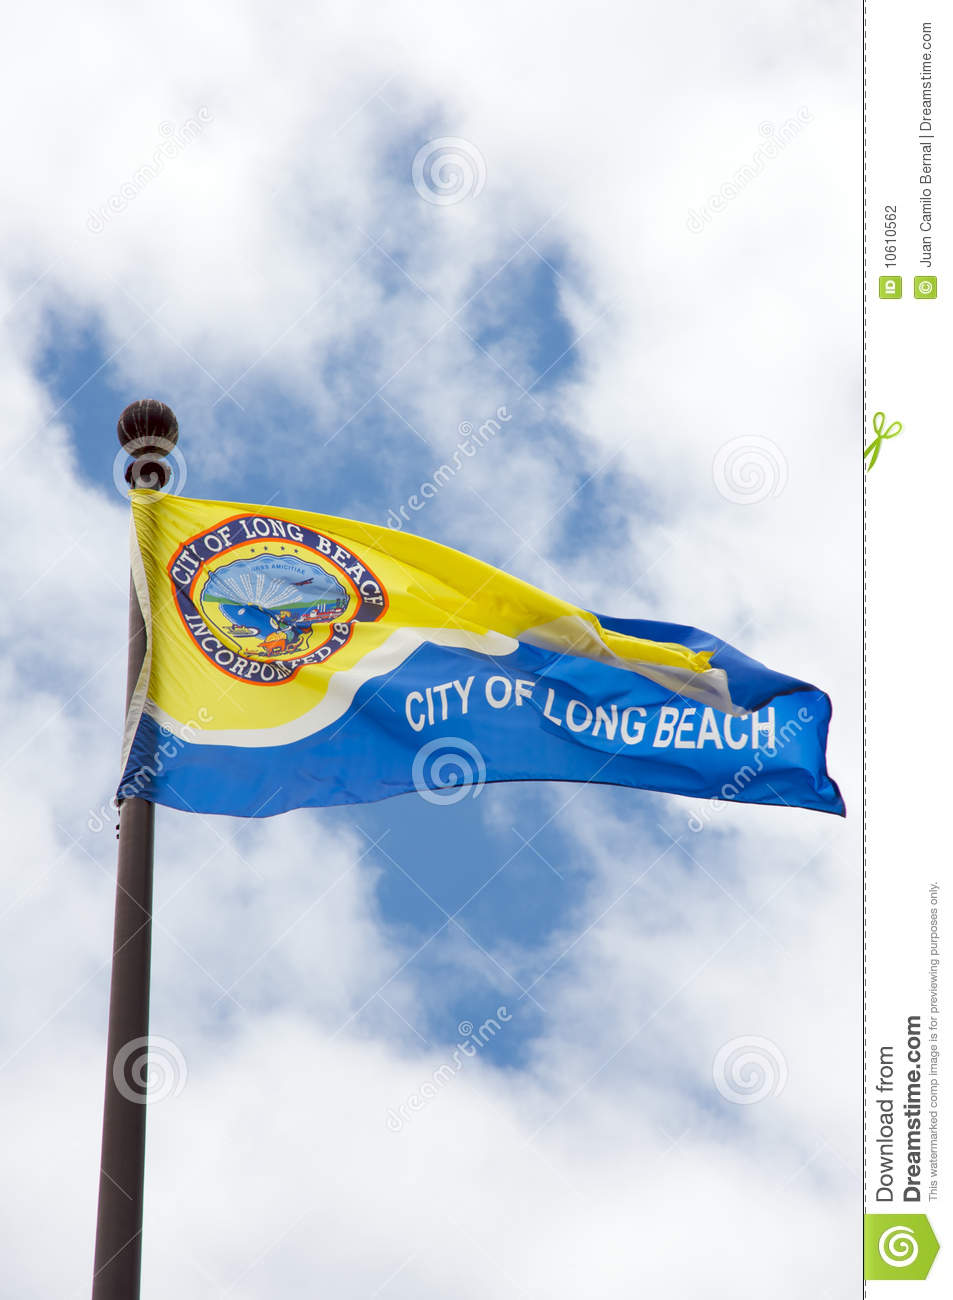 Voters named this jersey shore town the best beach in the united states. City Of Long Beach Flag Stock Photo Image Of Travel 10610562